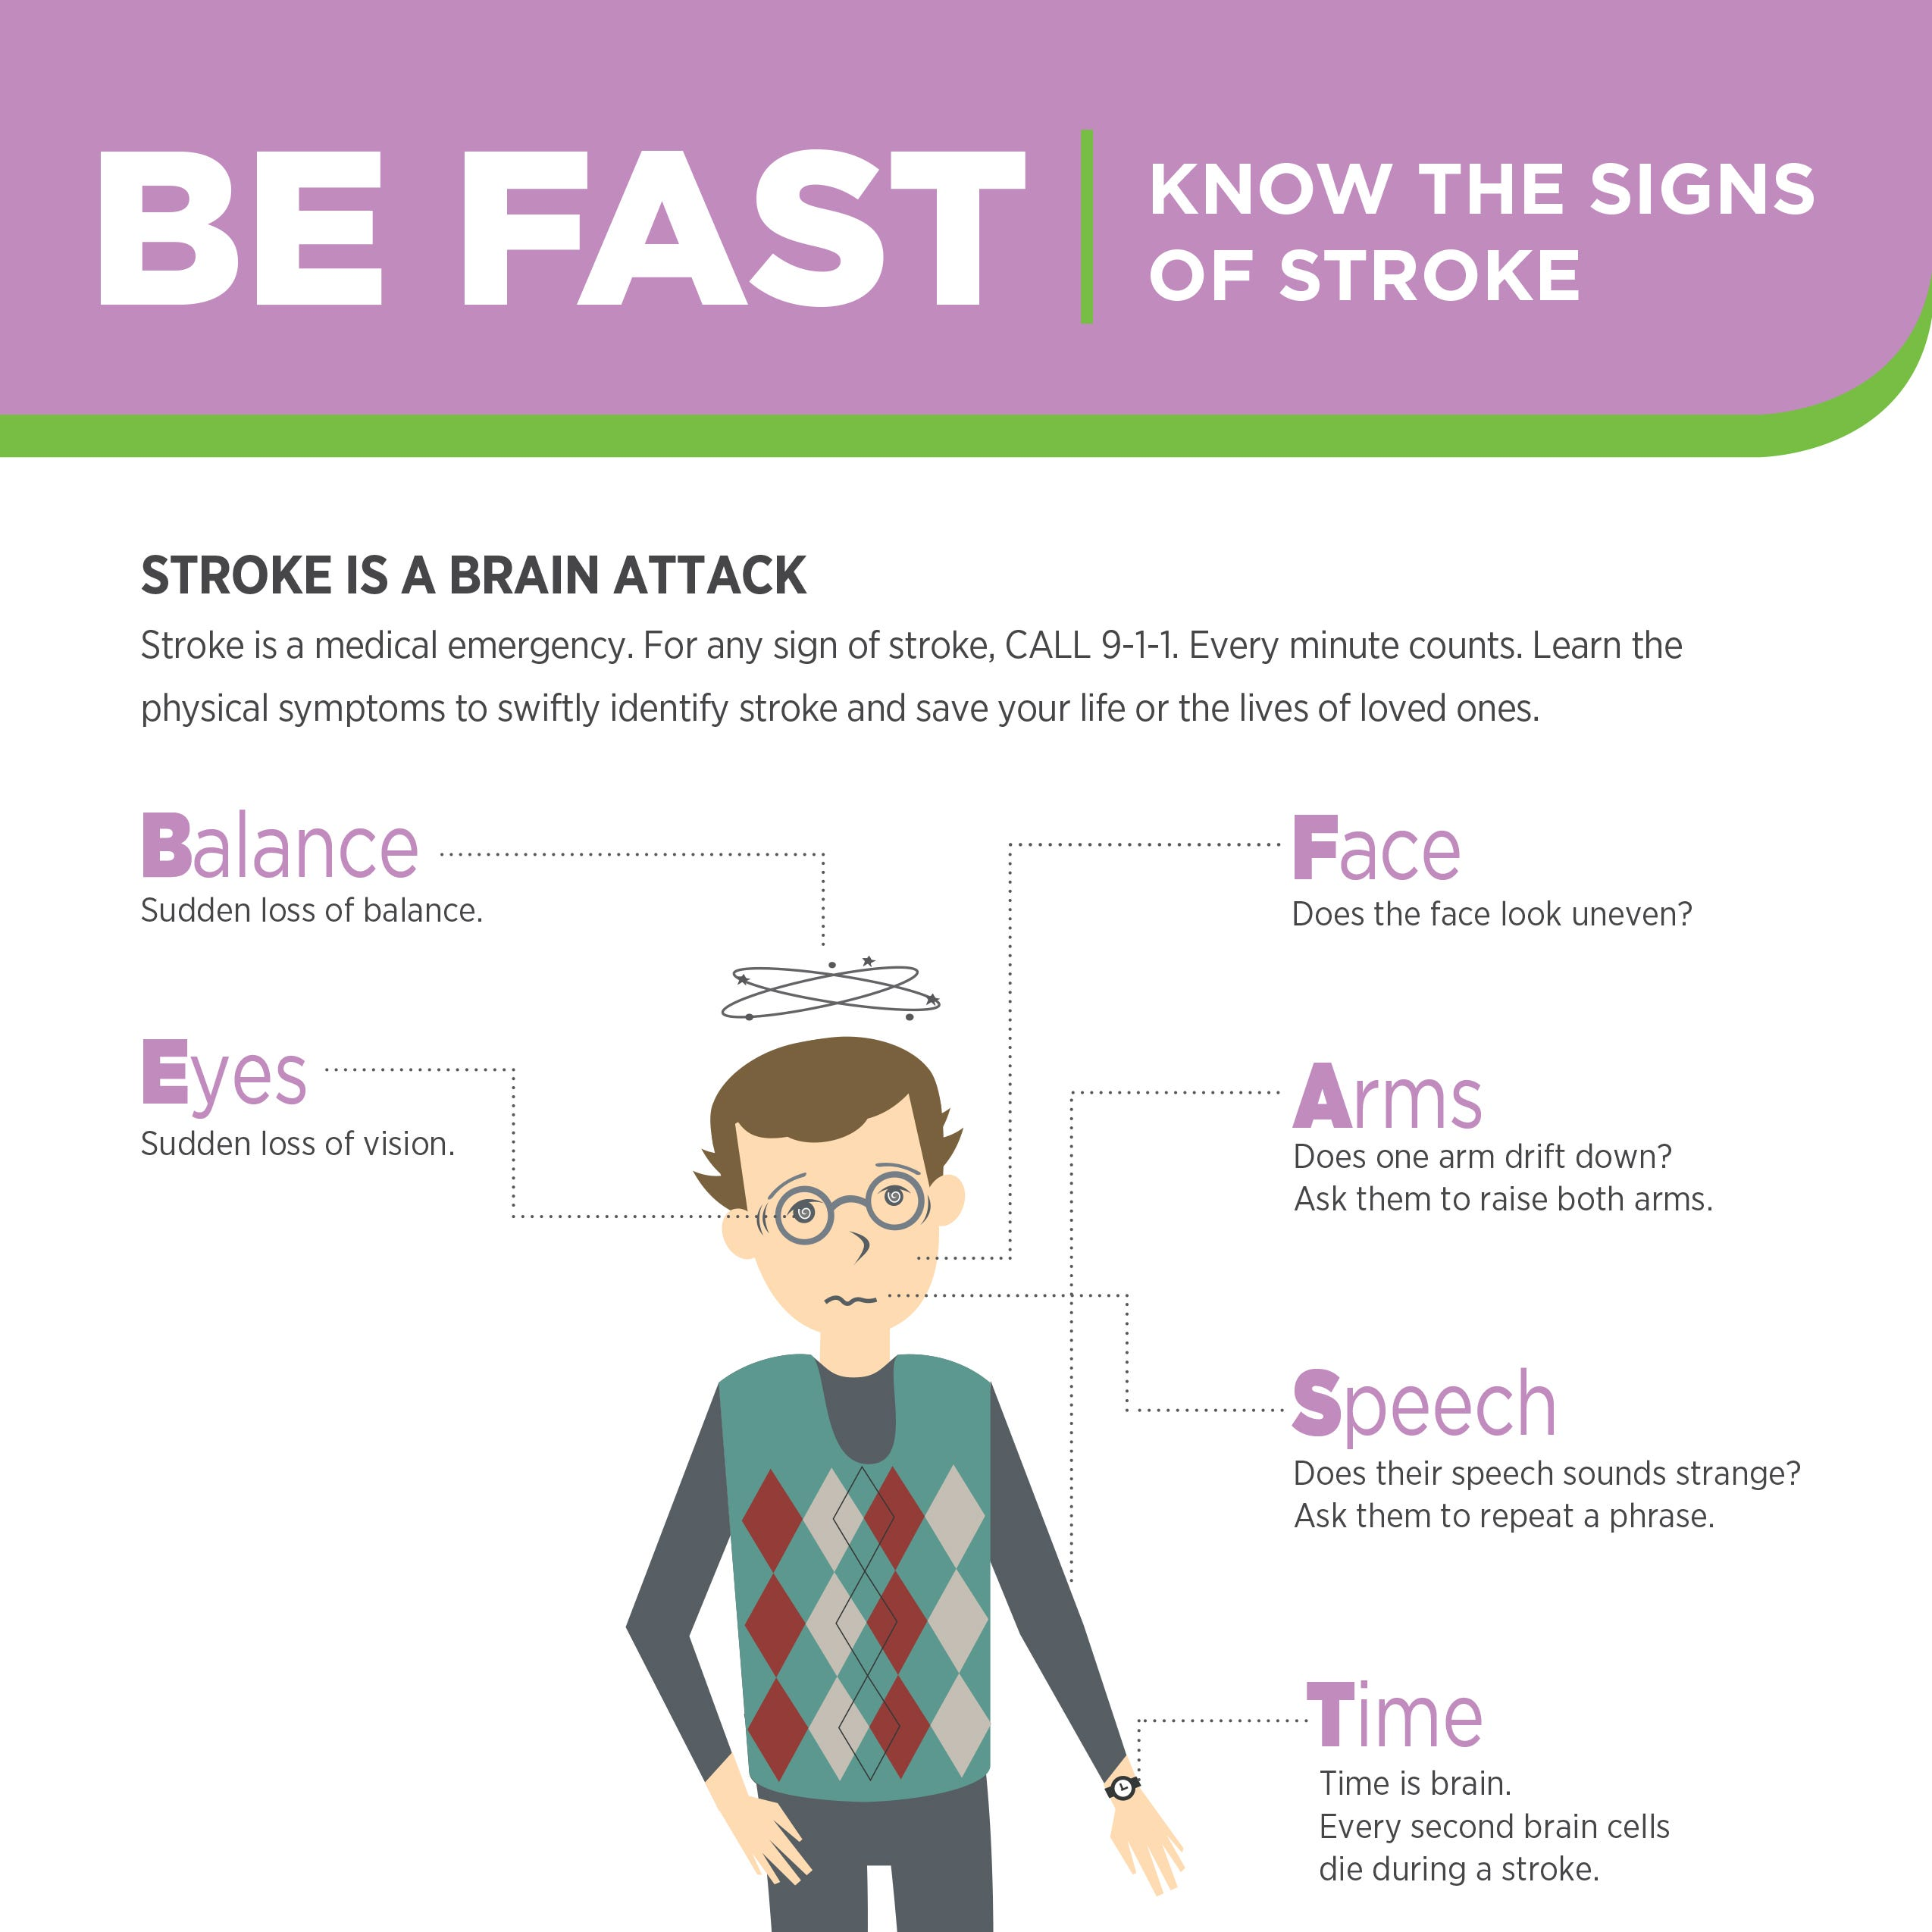 Every second counts when responding to a stroke